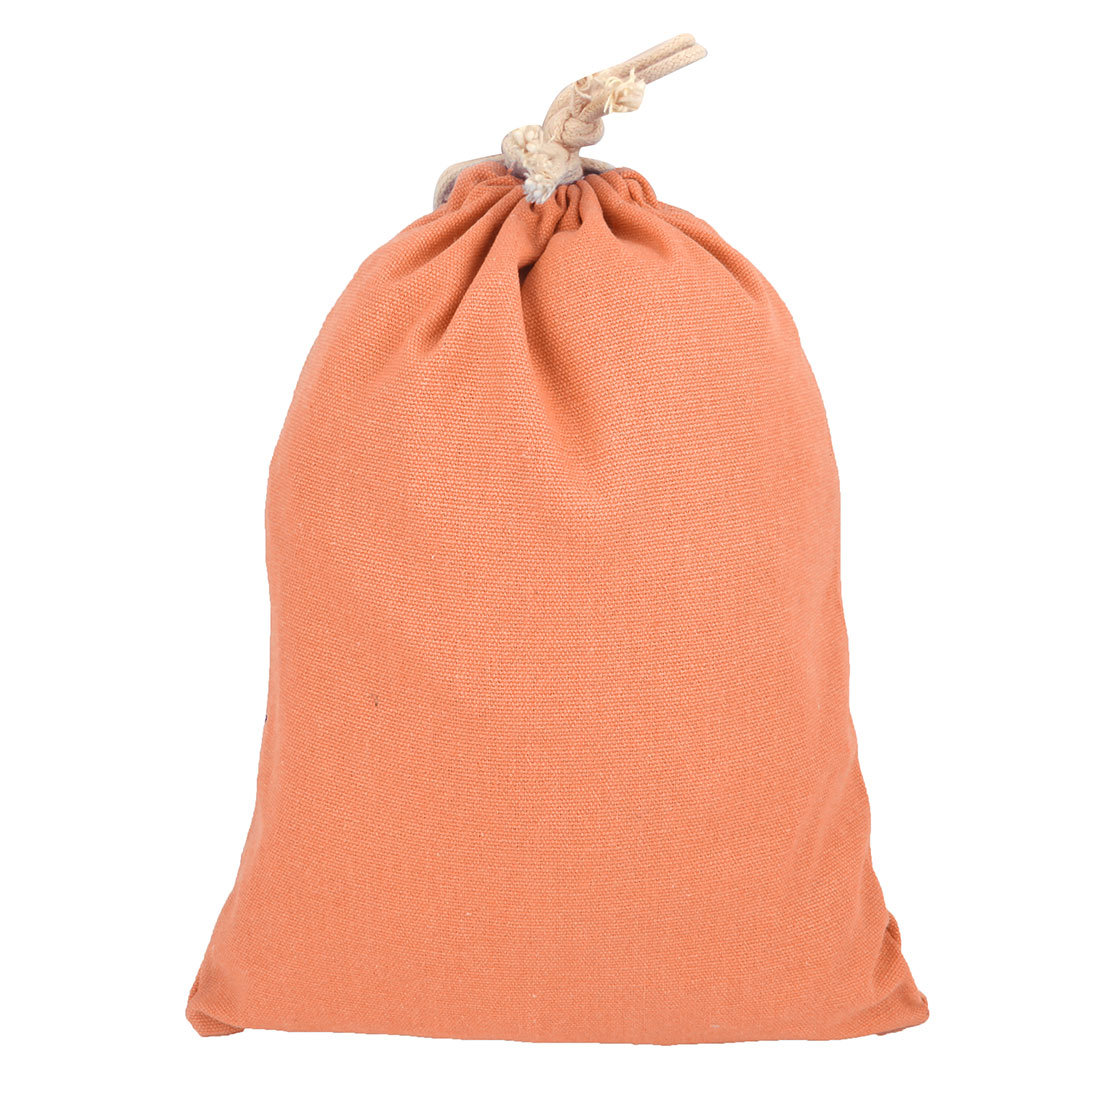 Outdoor Travelling Canvas Drawstring Pouch Storage Packing Gift Toe Bag Orange